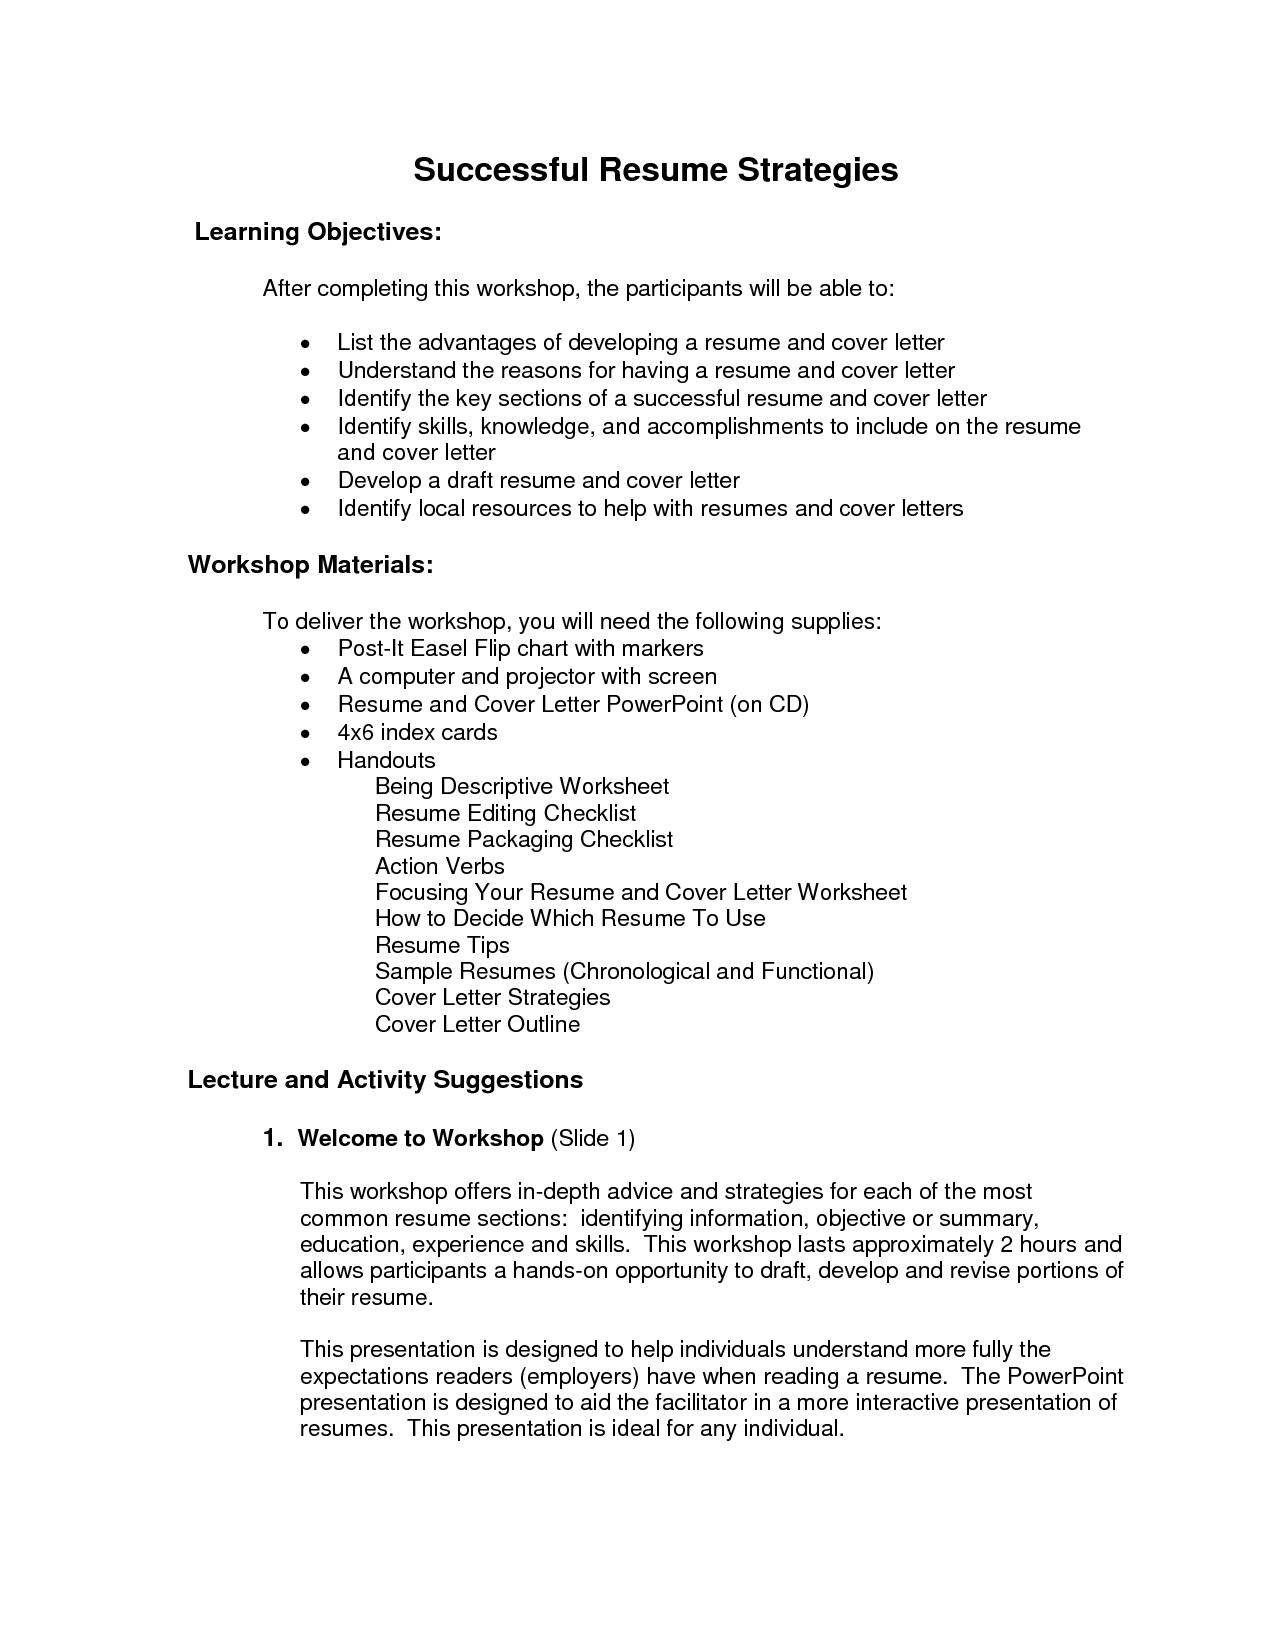 Fashion Stylist Resume Objective Examples Http Www Resumecareer Info Fashion Resume Objective Examples Resume Objective Statement Examples Resume Examples